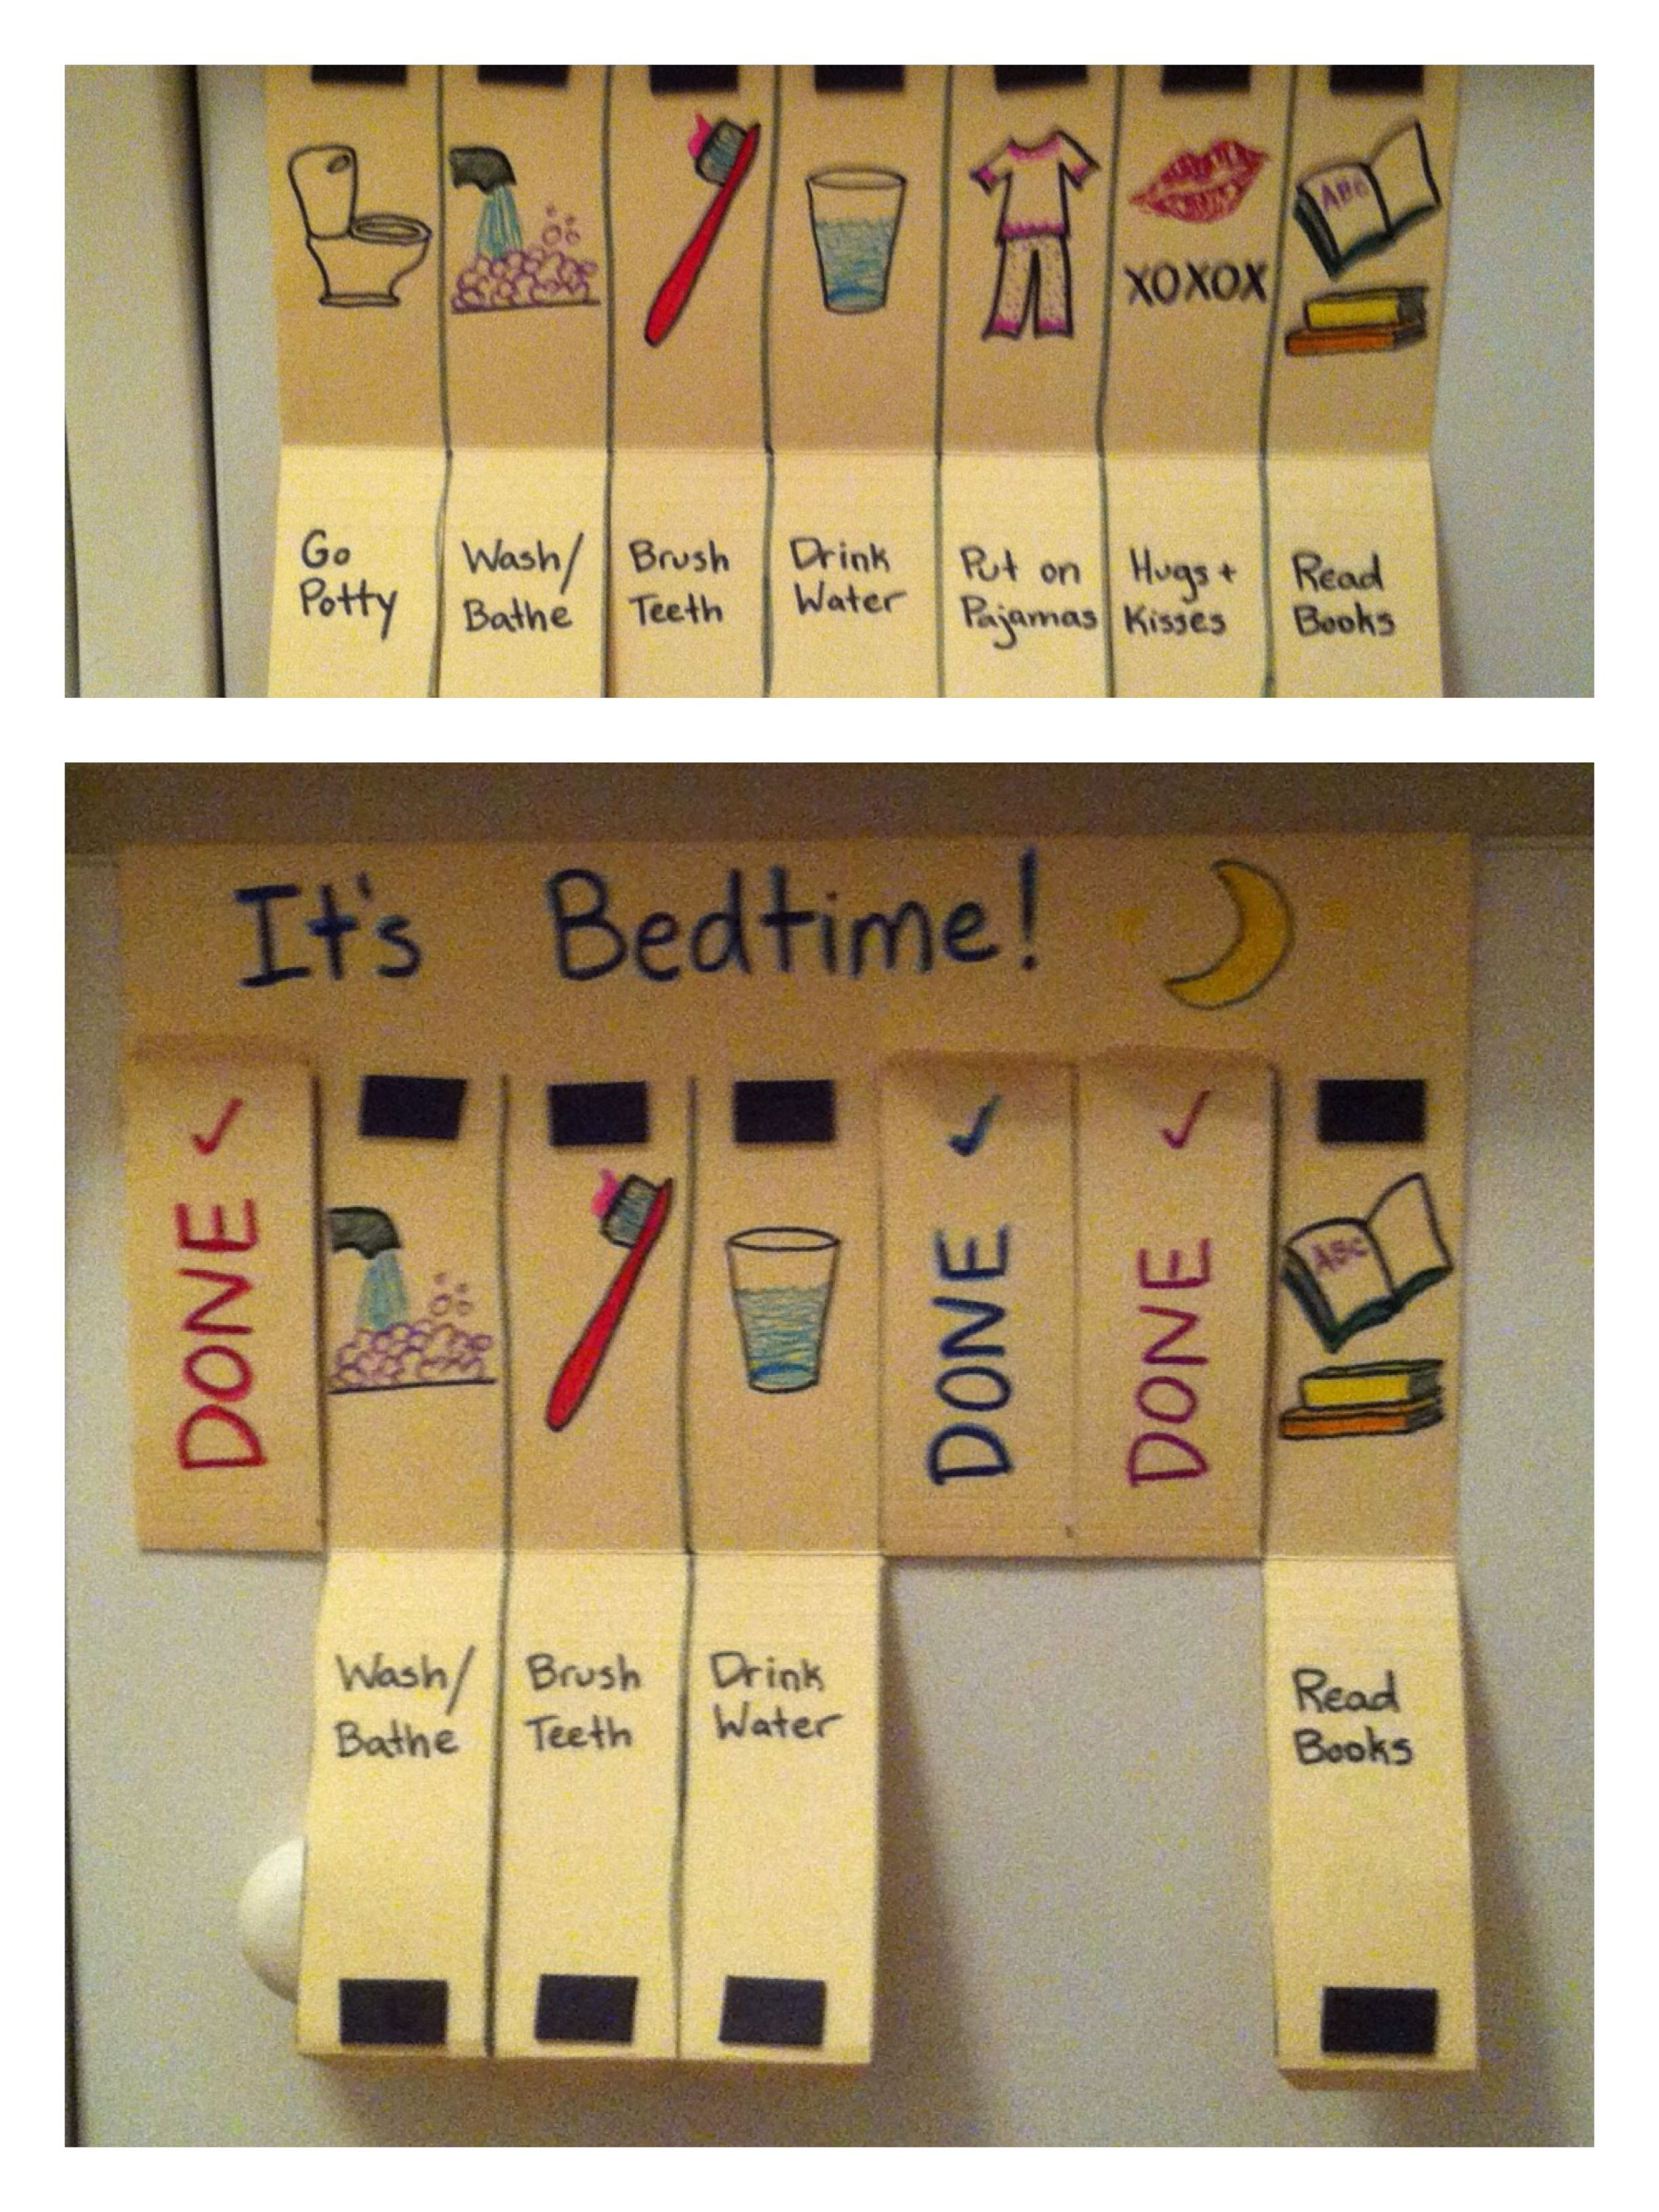 Pin By Amy Haukdal Spencer On Kids Chores For Kids Kids Routine Chart Kids Schedule